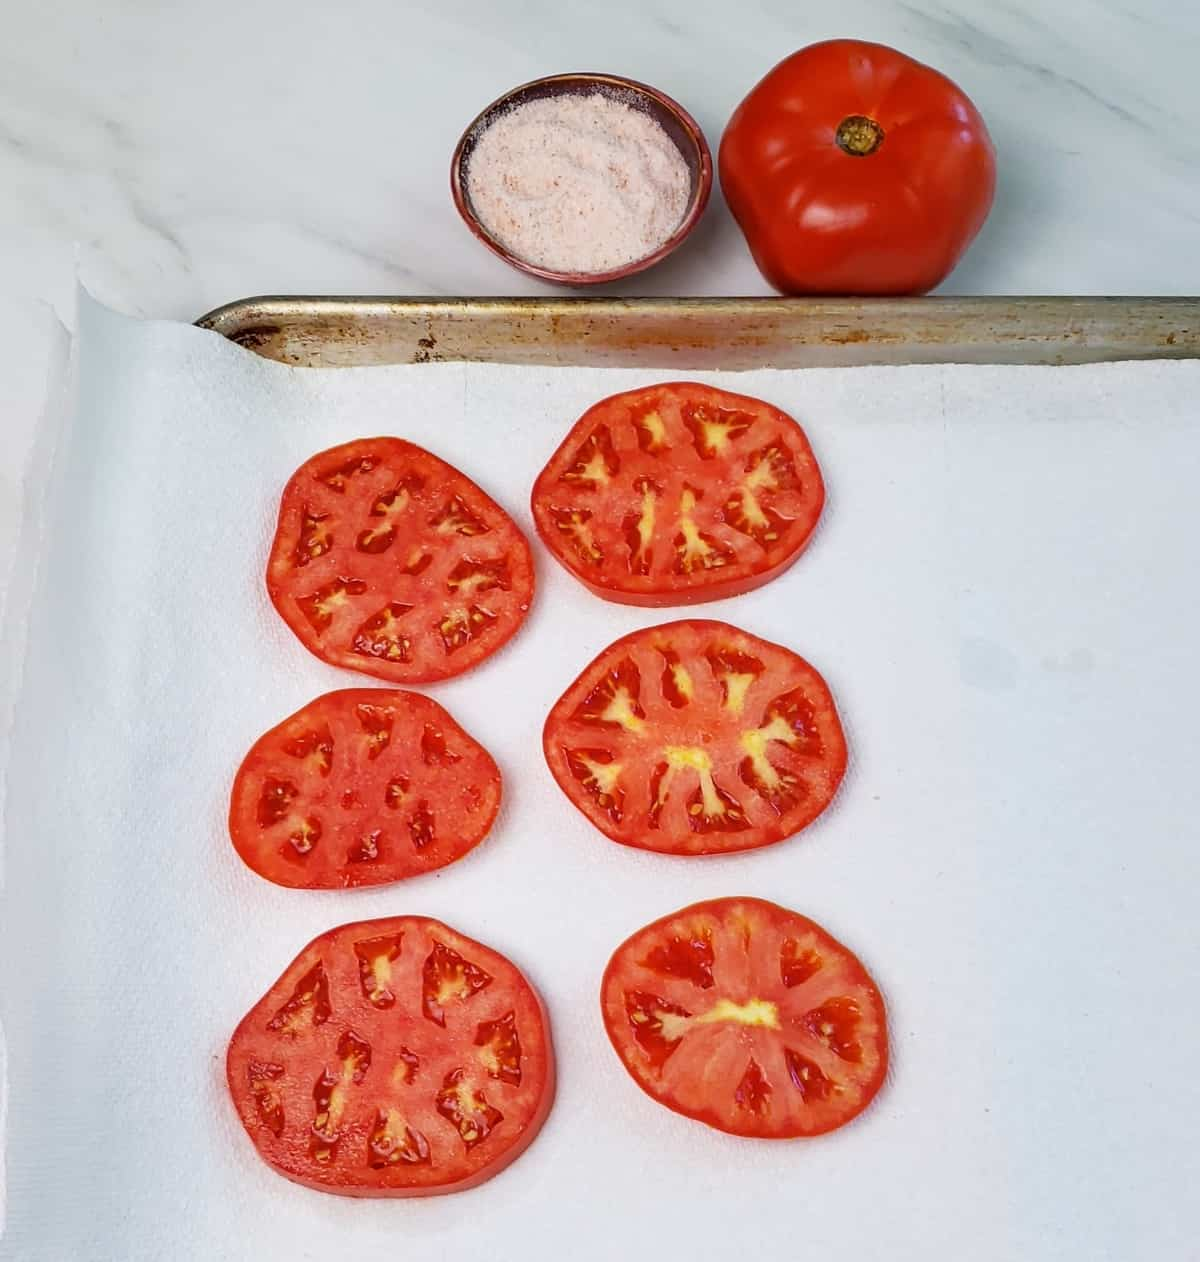 sliced tomatoes on paper towels on a baking pan. A tiny dish of pink salt and a tomato is next to pan